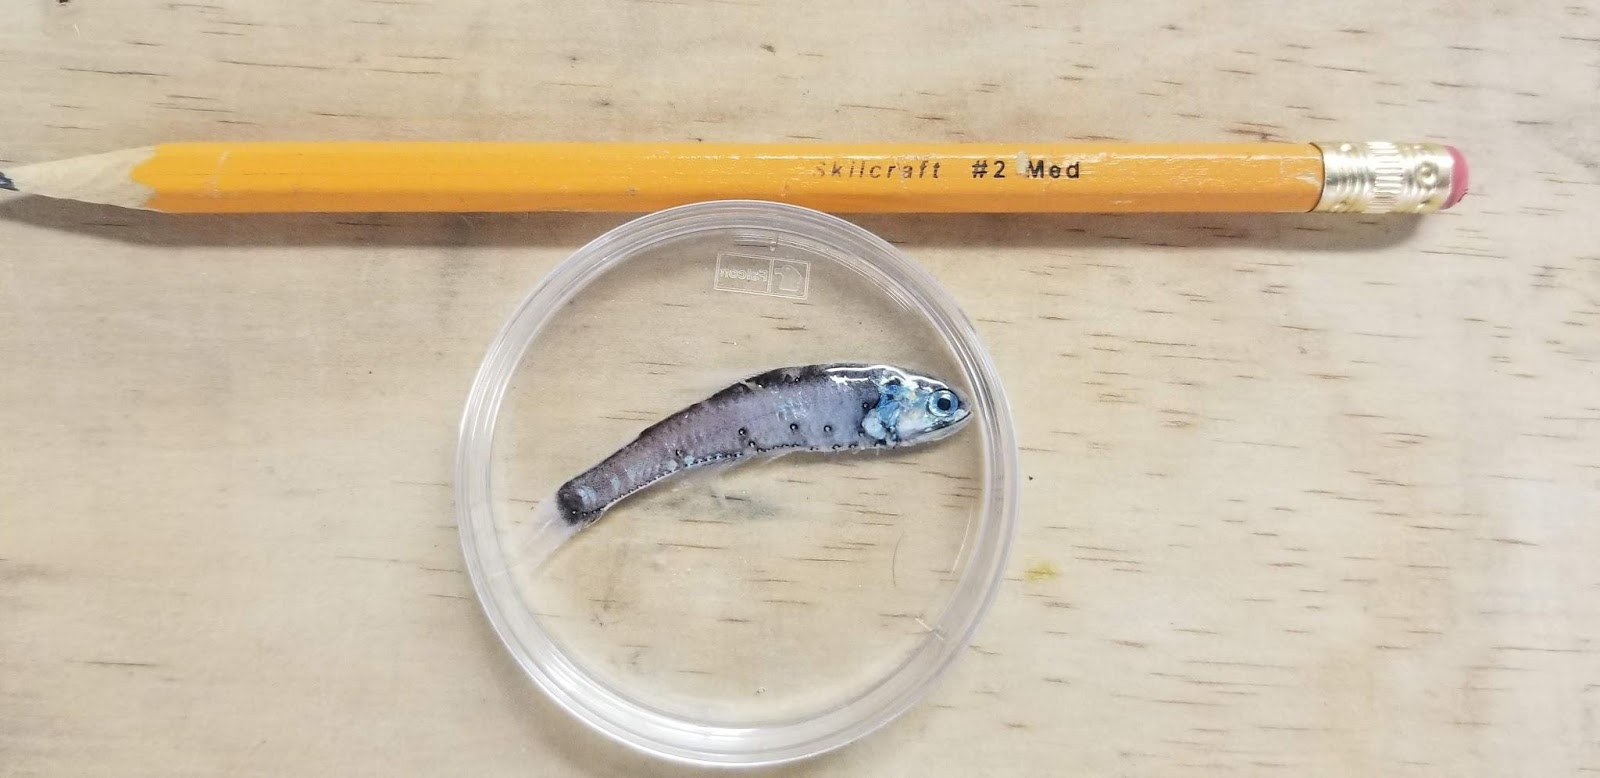 lanternfish v pencil